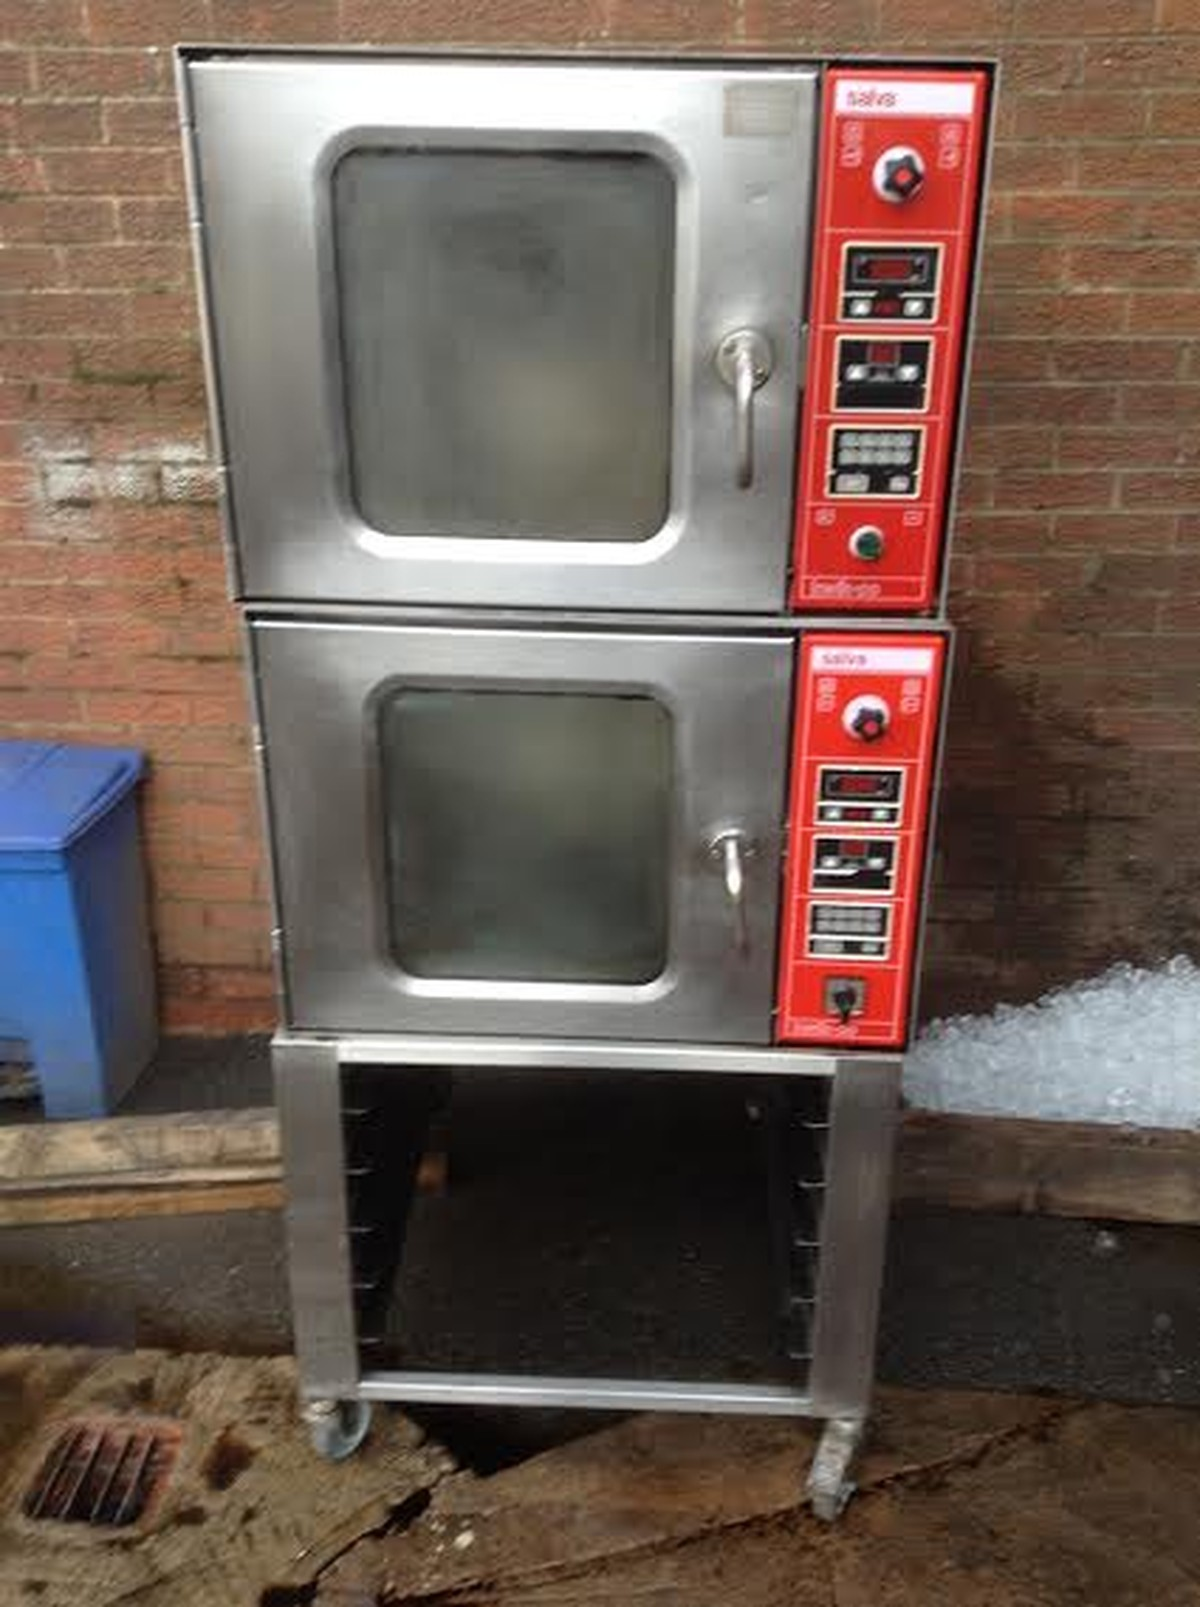 Oven Used In Bake Off Salva Bake Of Oven Lancashire